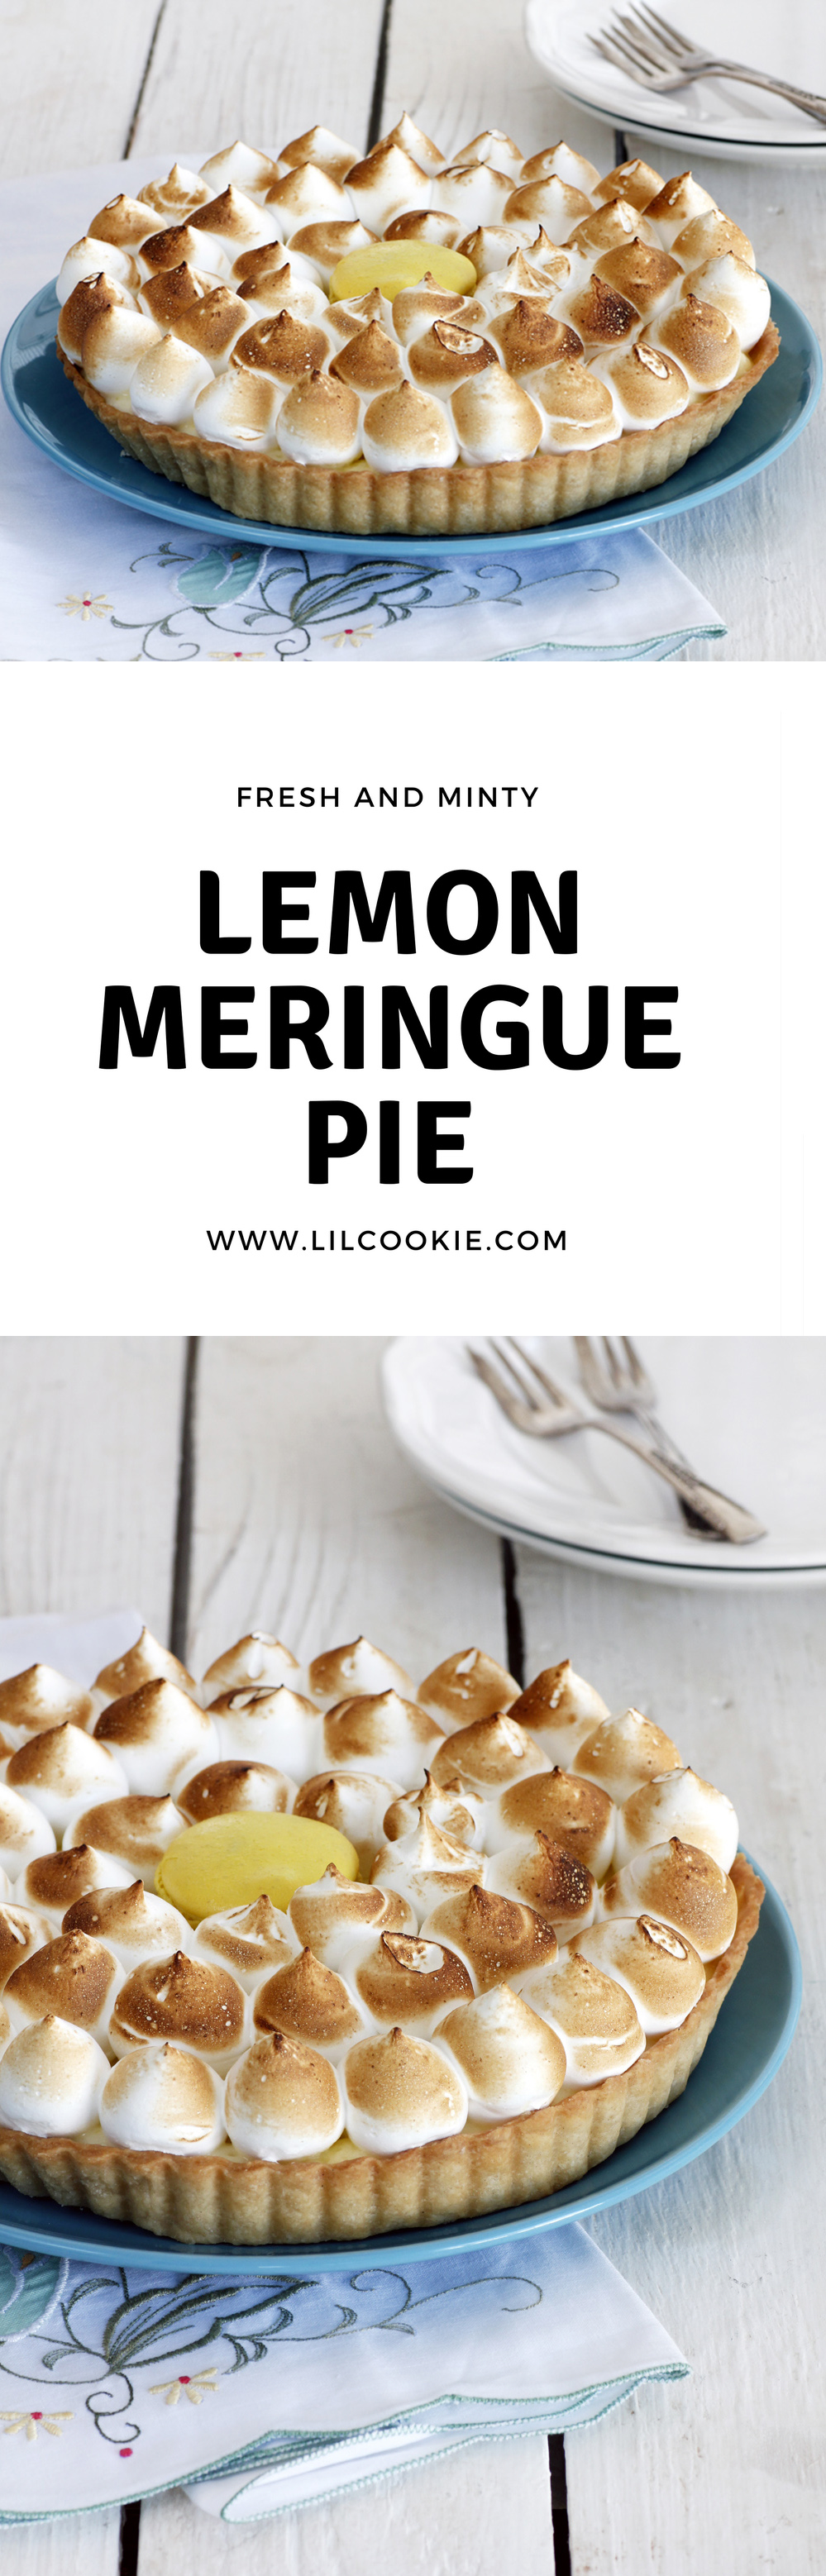 Minty Lemon Meringue Pie